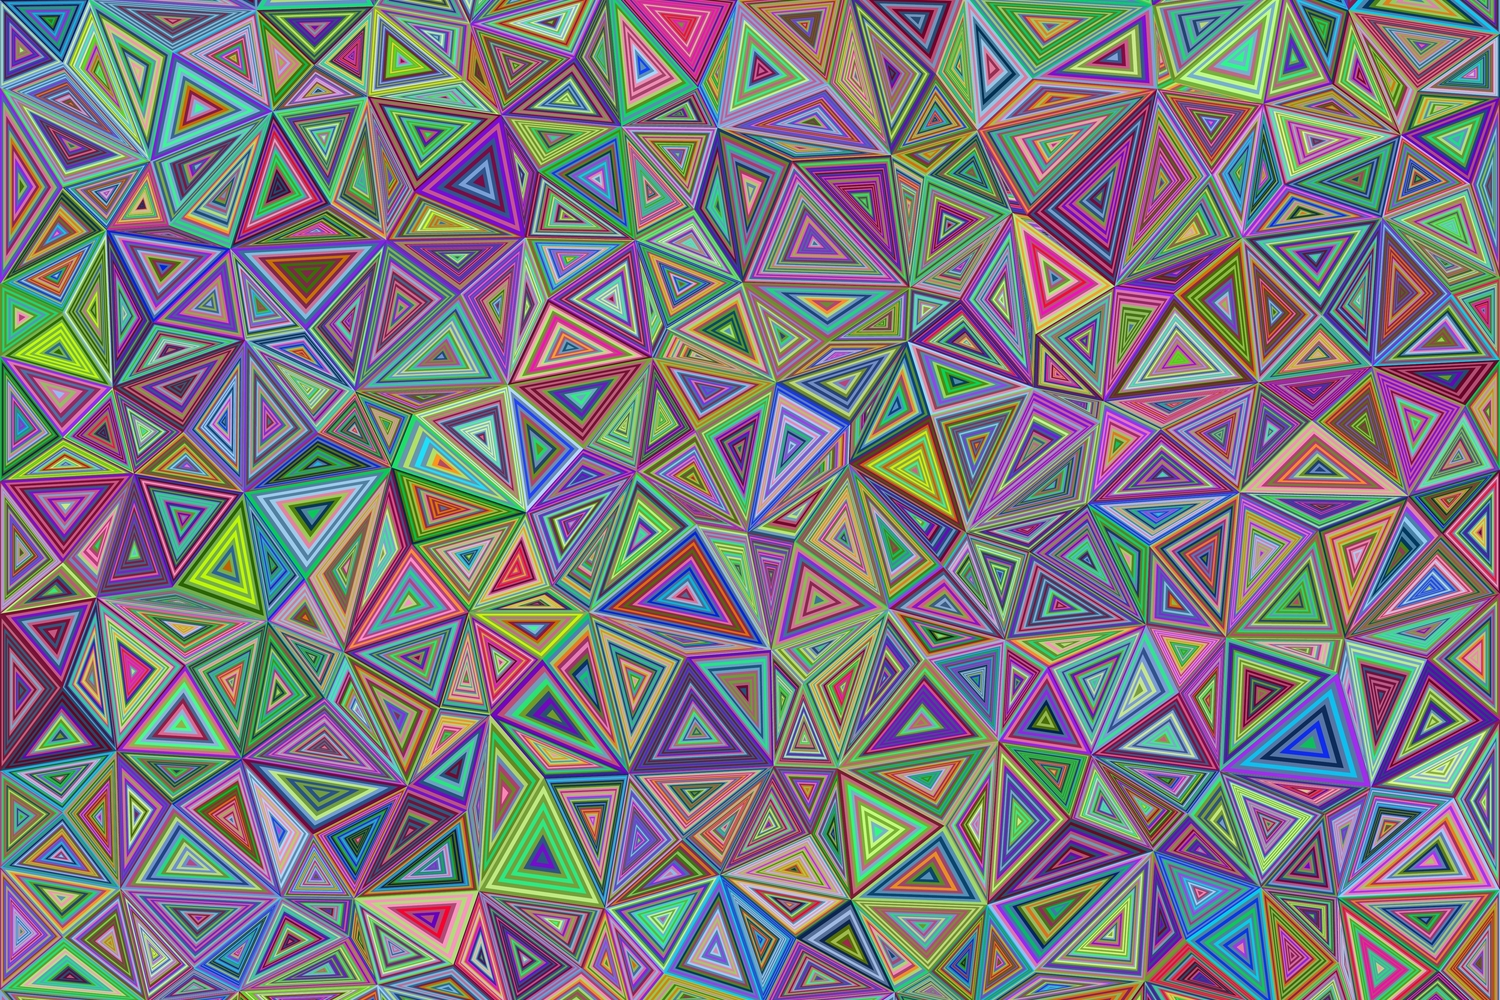 50 Colorful Triangle Backgrounds example image 2